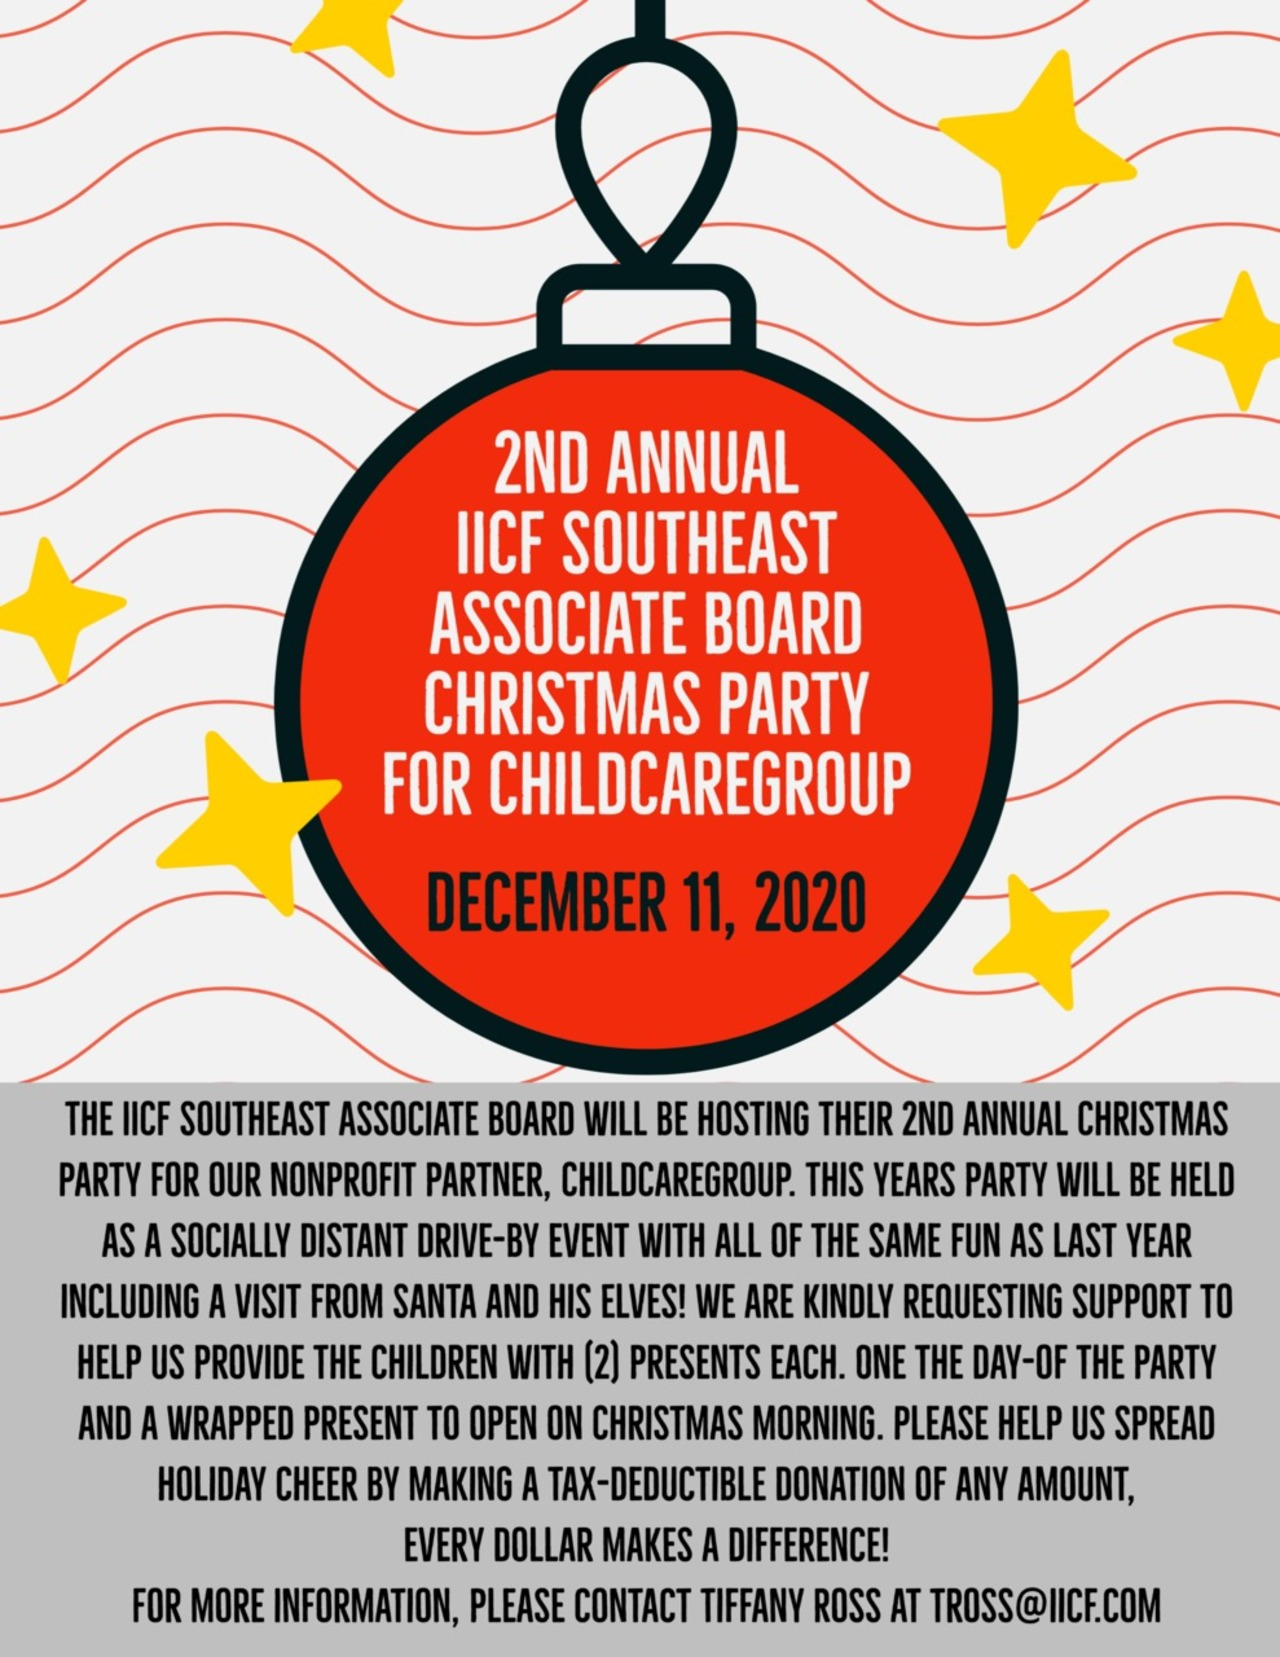 2nd Annual IICF Southeast Associate Board Christmas Party for ChildCareGroup